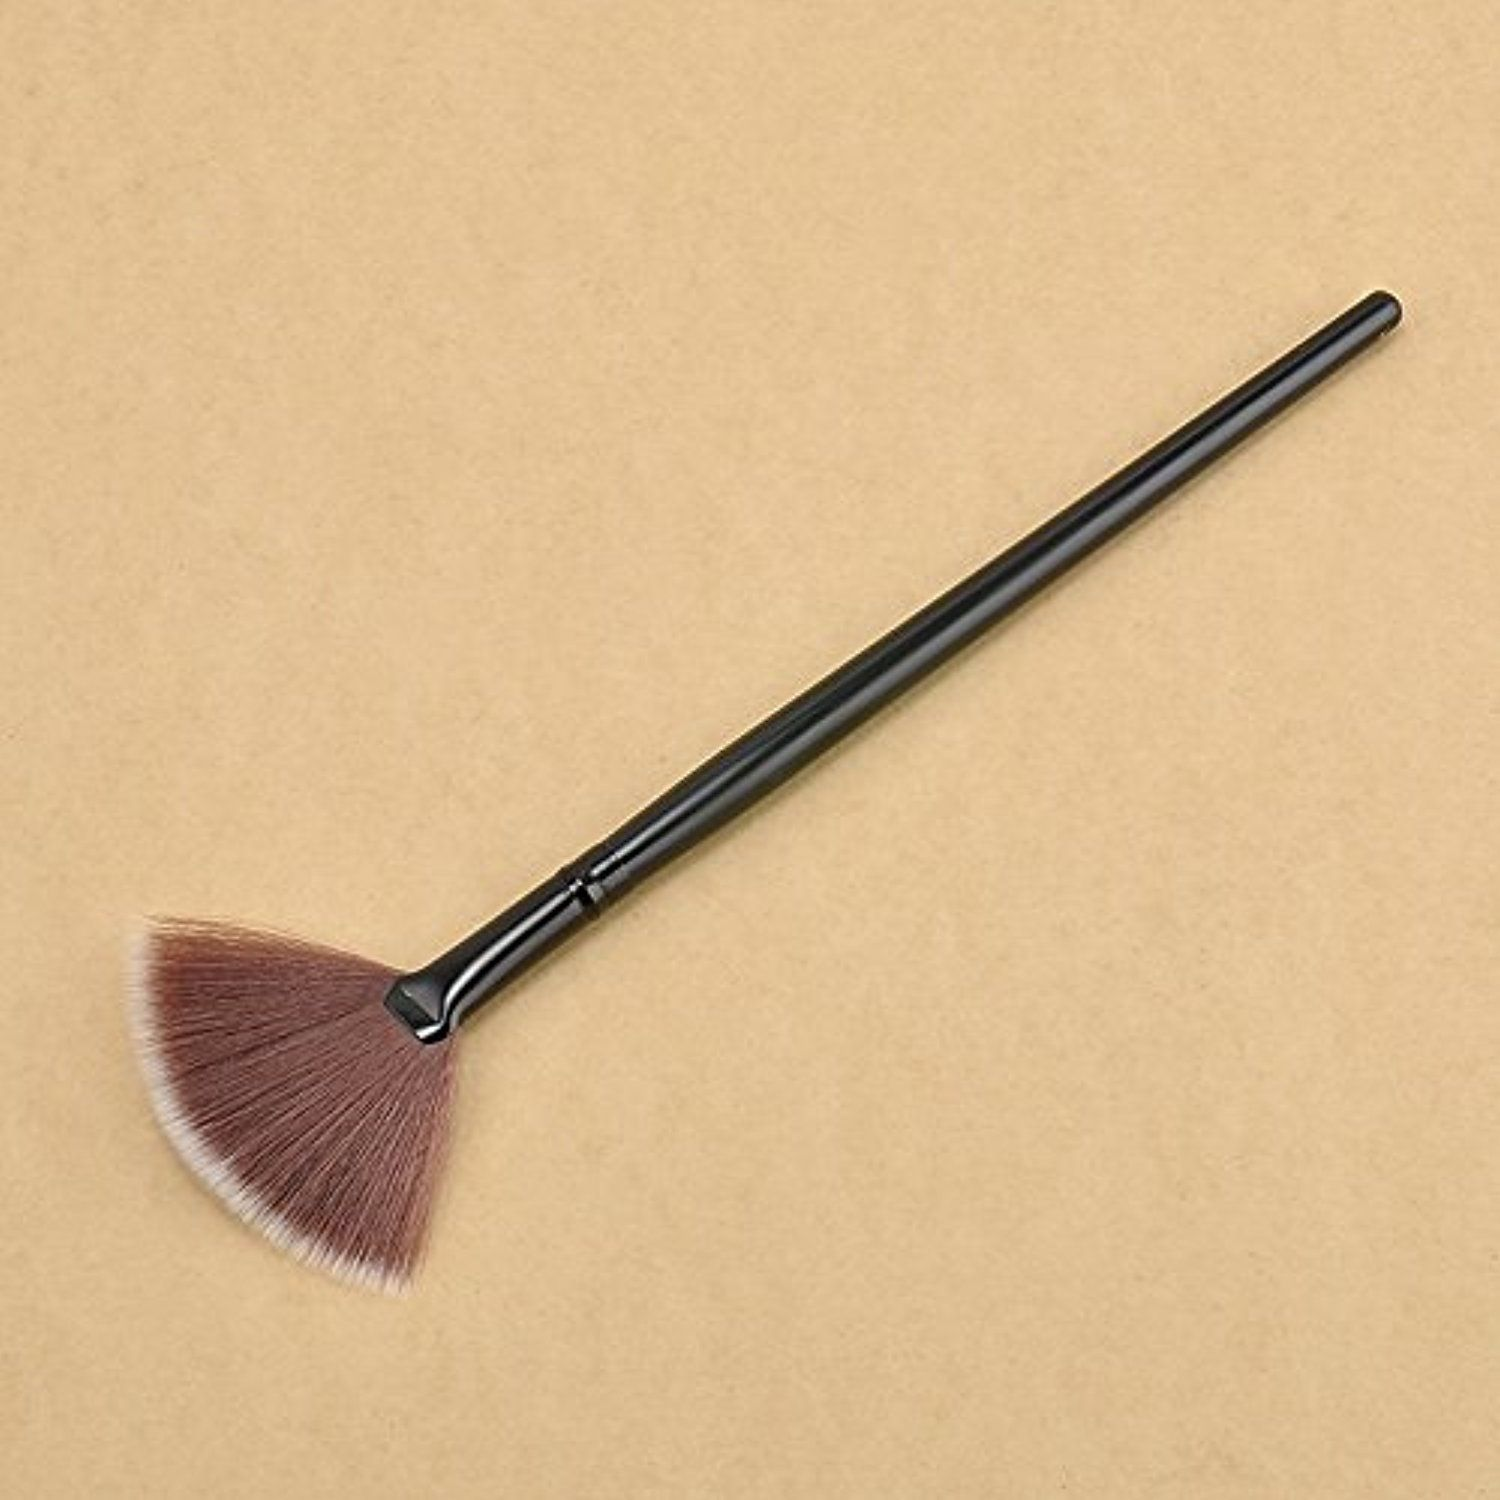 1 pcs Fan Shape Makeup Brushes Cosmetic Brush Blending